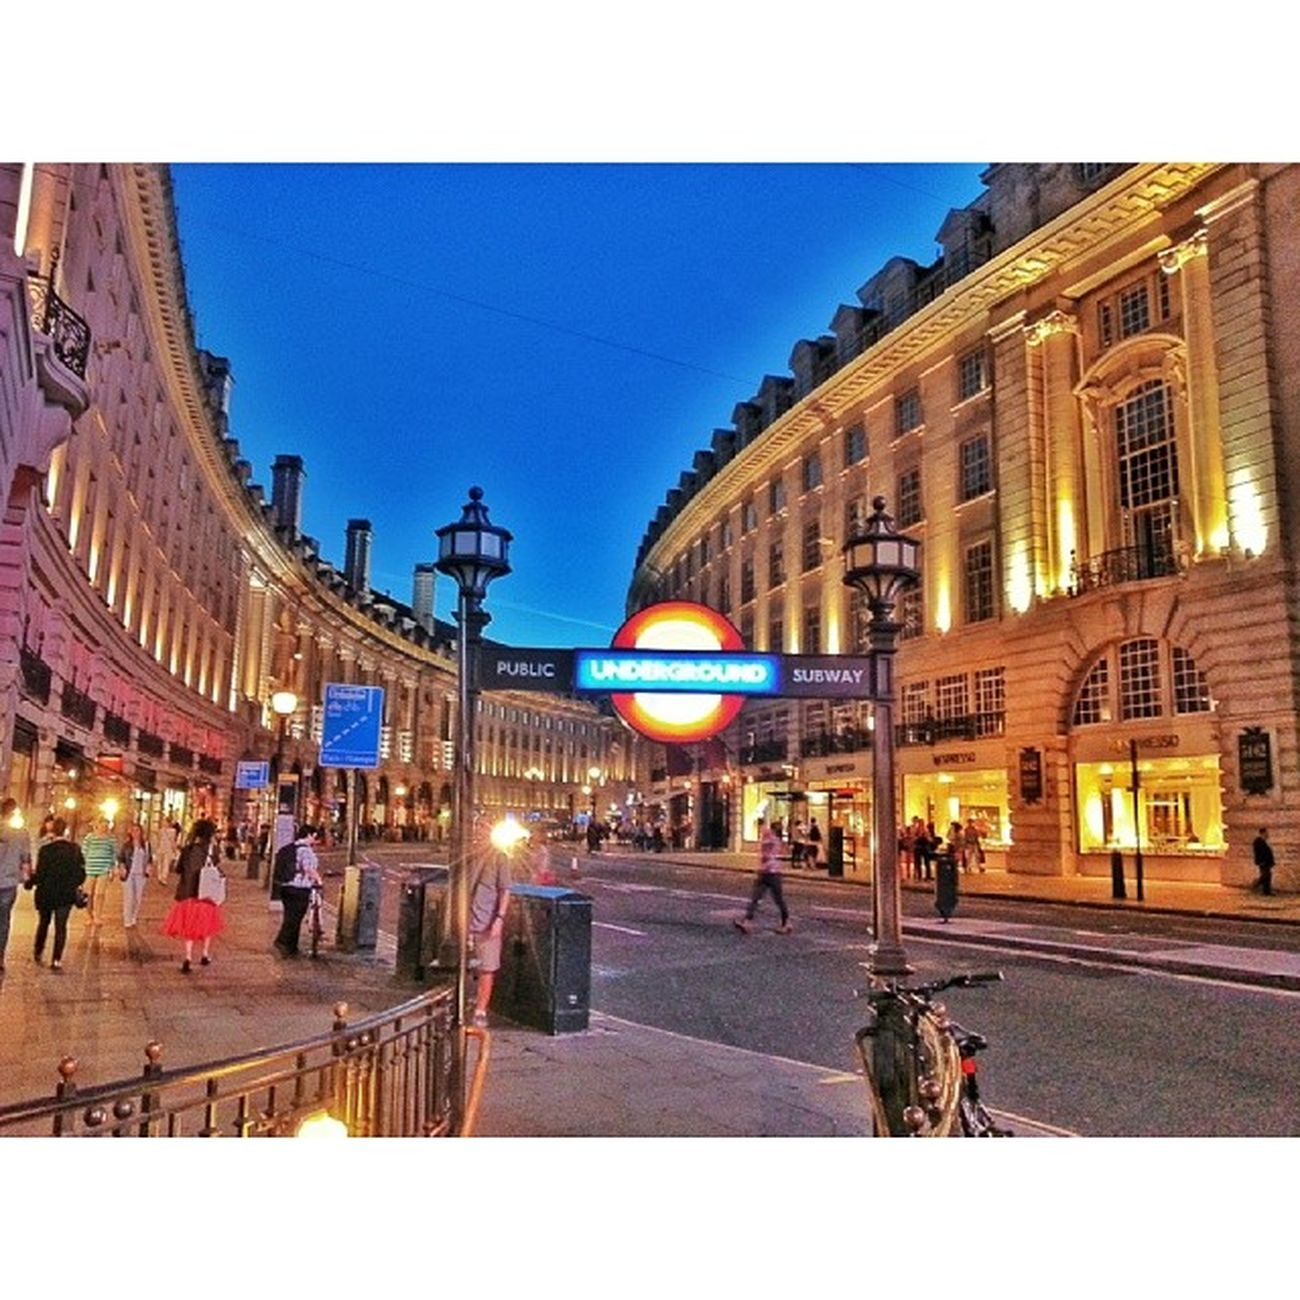 London England Londonstreet Piccadlly piccadllycircus oldcity historical colorful aniyakala objektifimden bir_dakika vscocam vscoism vsco squaregram vscogram webstagram tweegram igersworldwide ig_bestever best_shots_ever ig_turkey turkinstagram turkishfollowers onedirection photogram_tr photooftheday world_interest